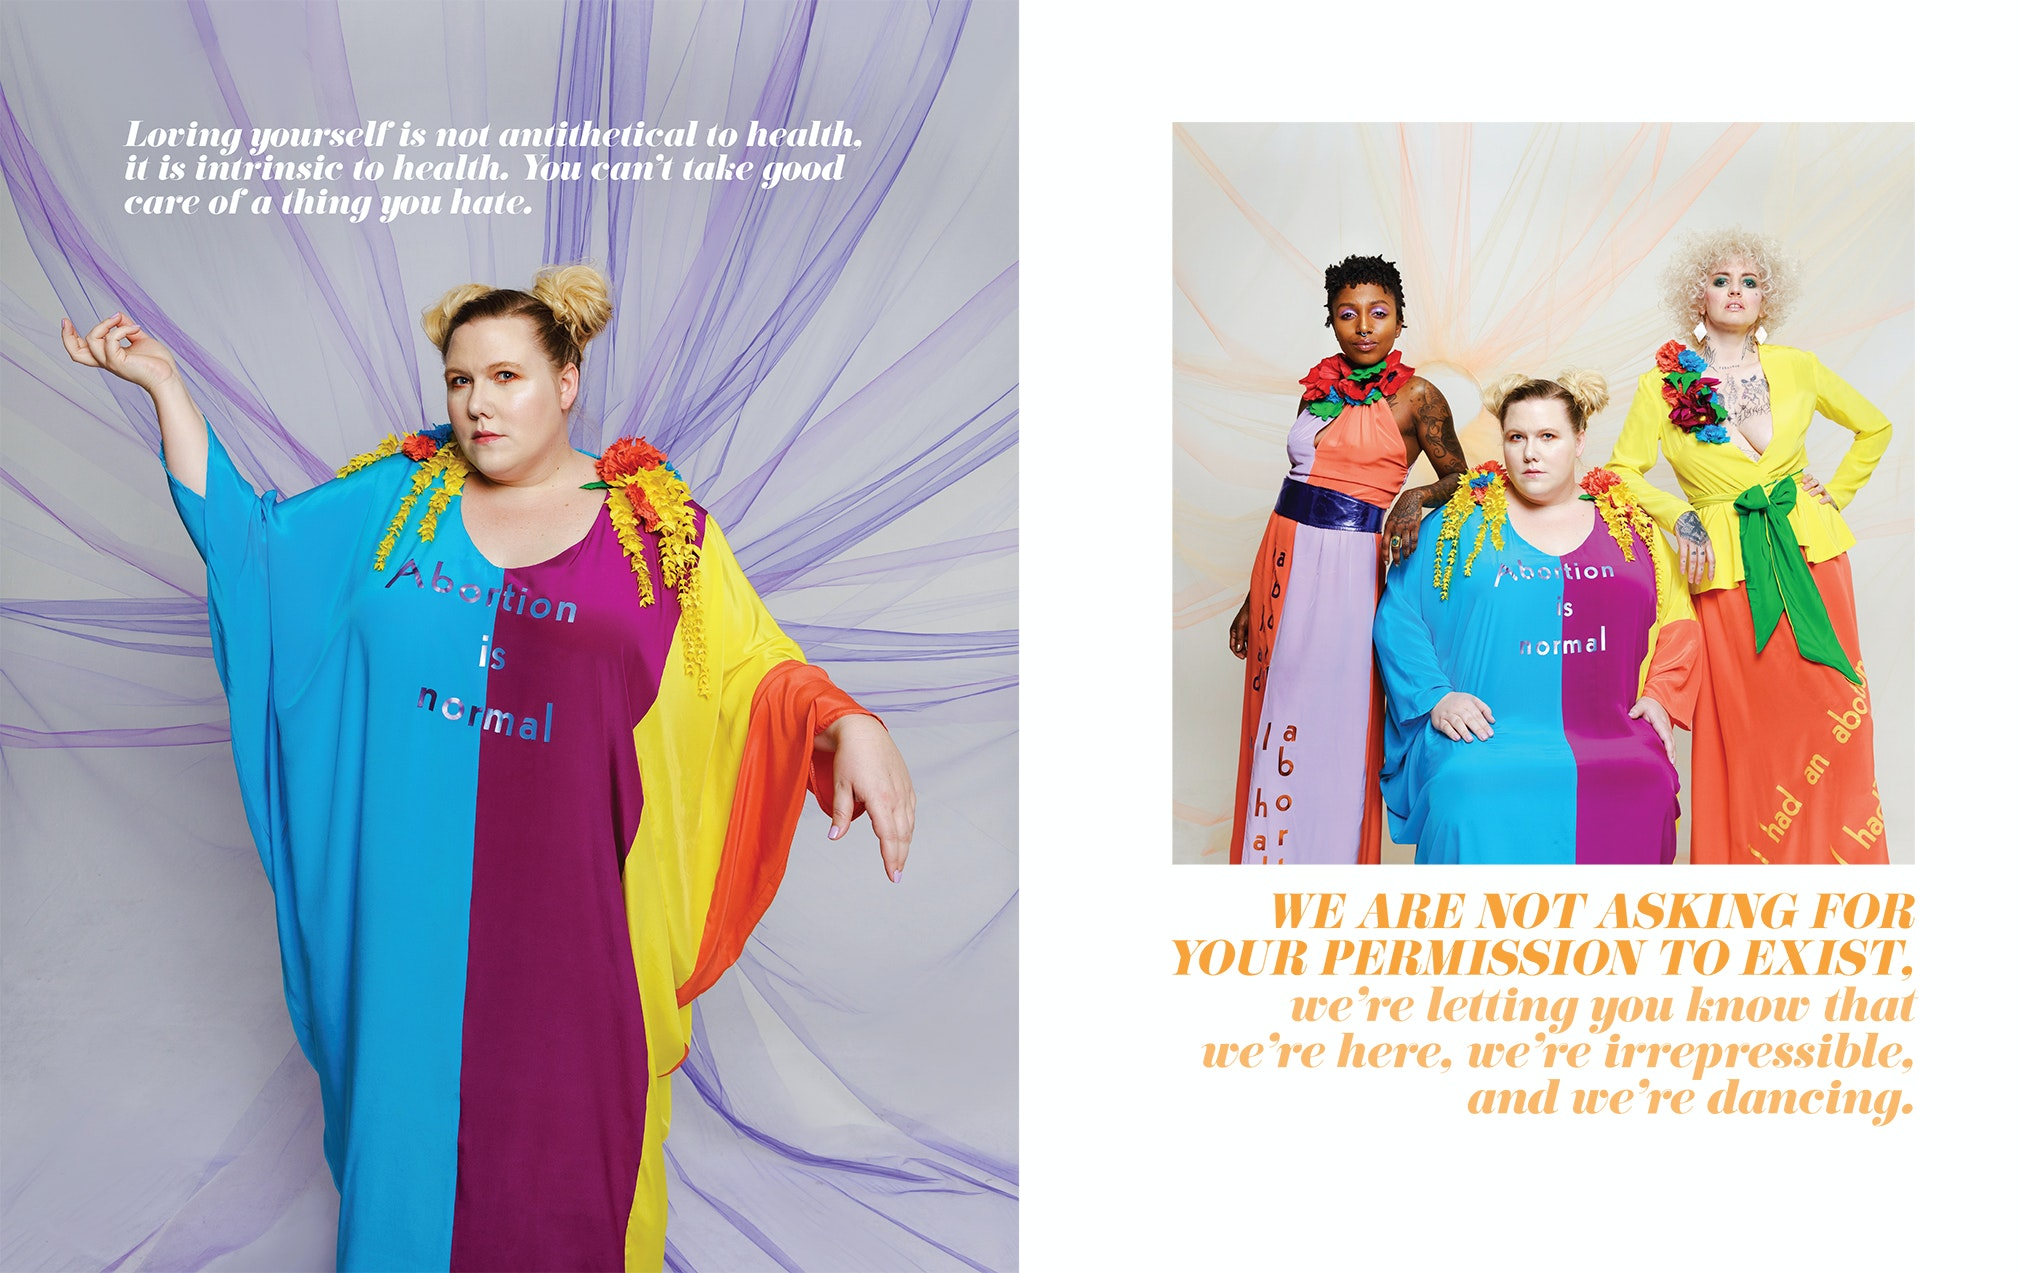 Lindy West (left) and Alana Edmondson, Lindy West and Shannon Perry (right) modeling abortion couture designed by Mark Mitchell.